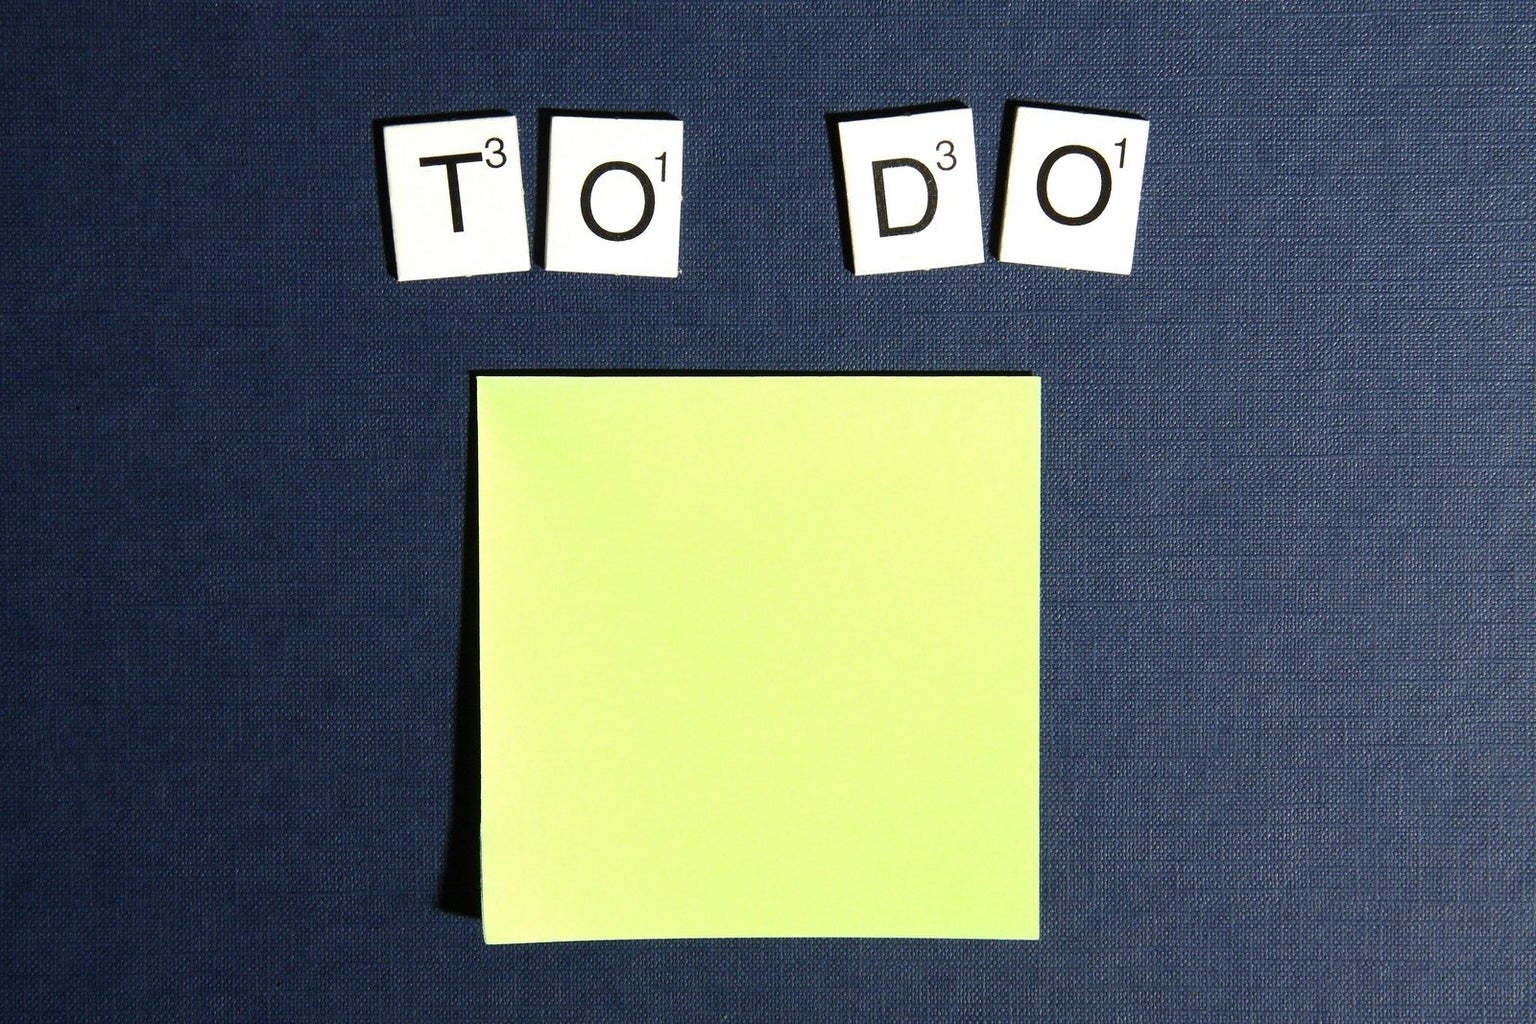 """Scrabble tiles spell out """"To Do"""" on a blue background above a yellow sticky note"""